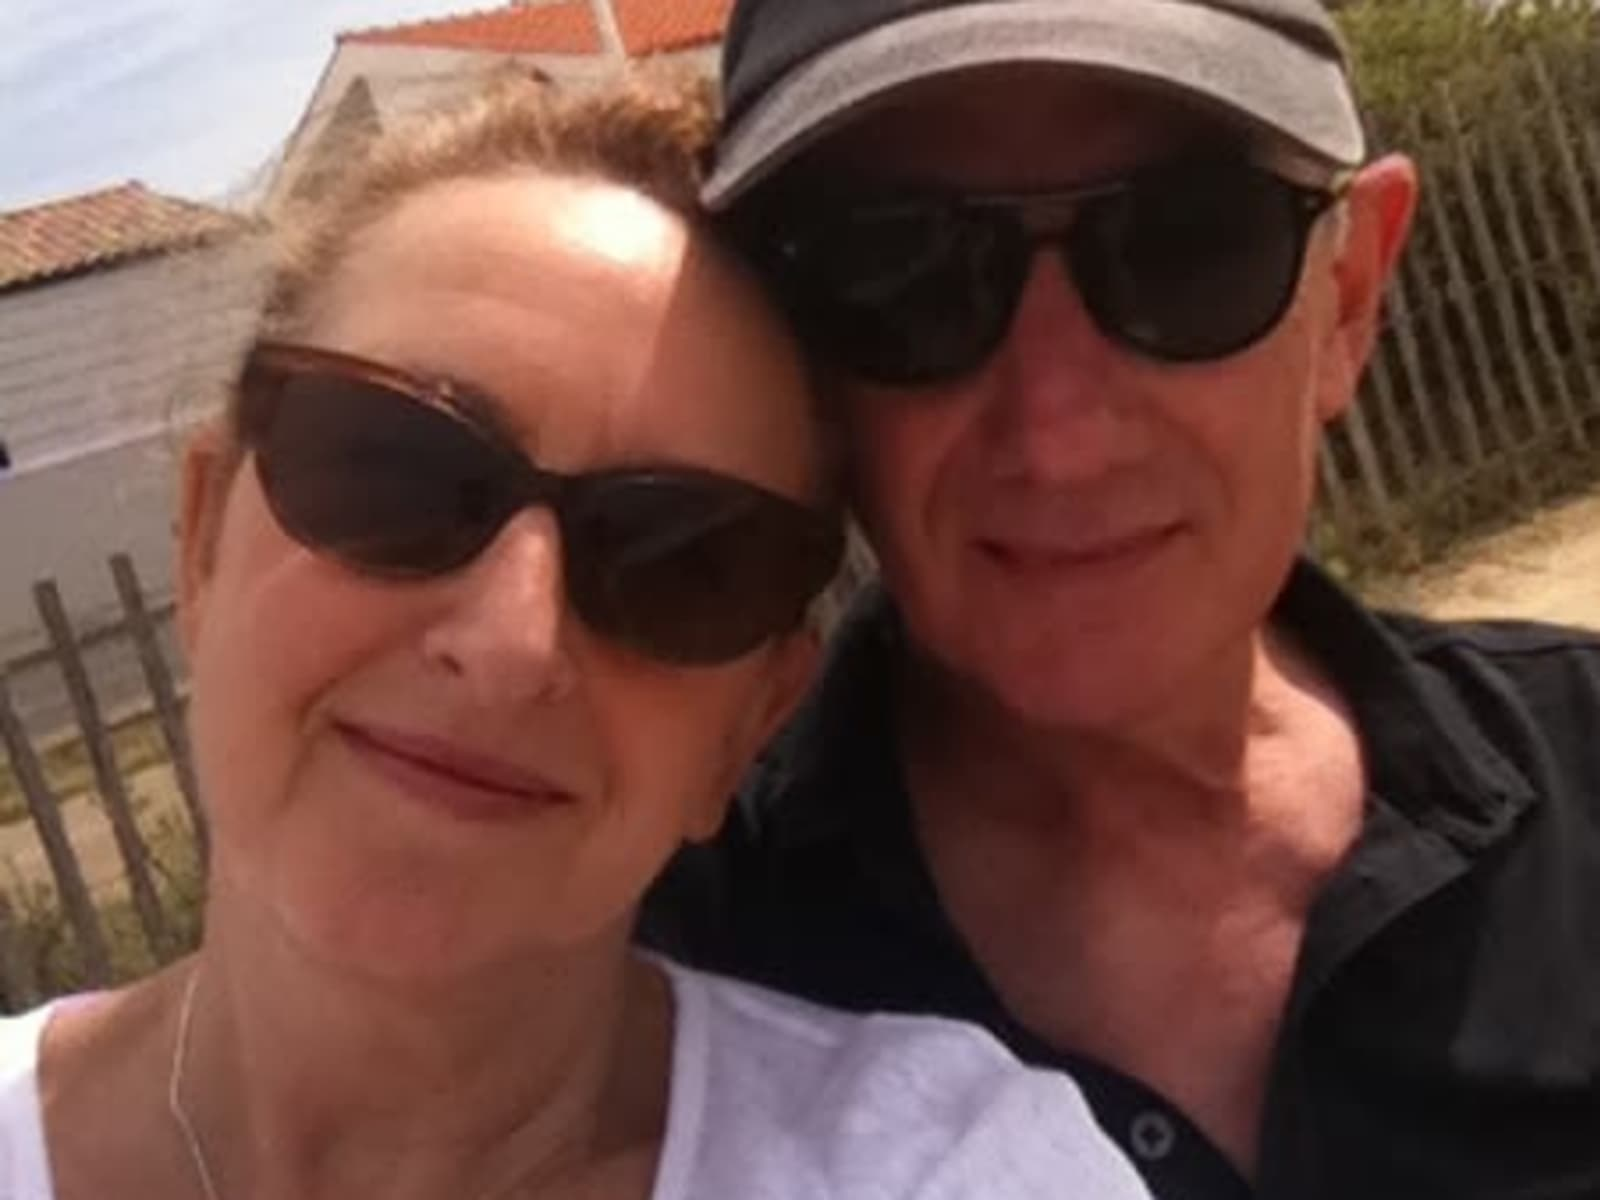 Marcia & Ian from Bloxham, United Kingdom